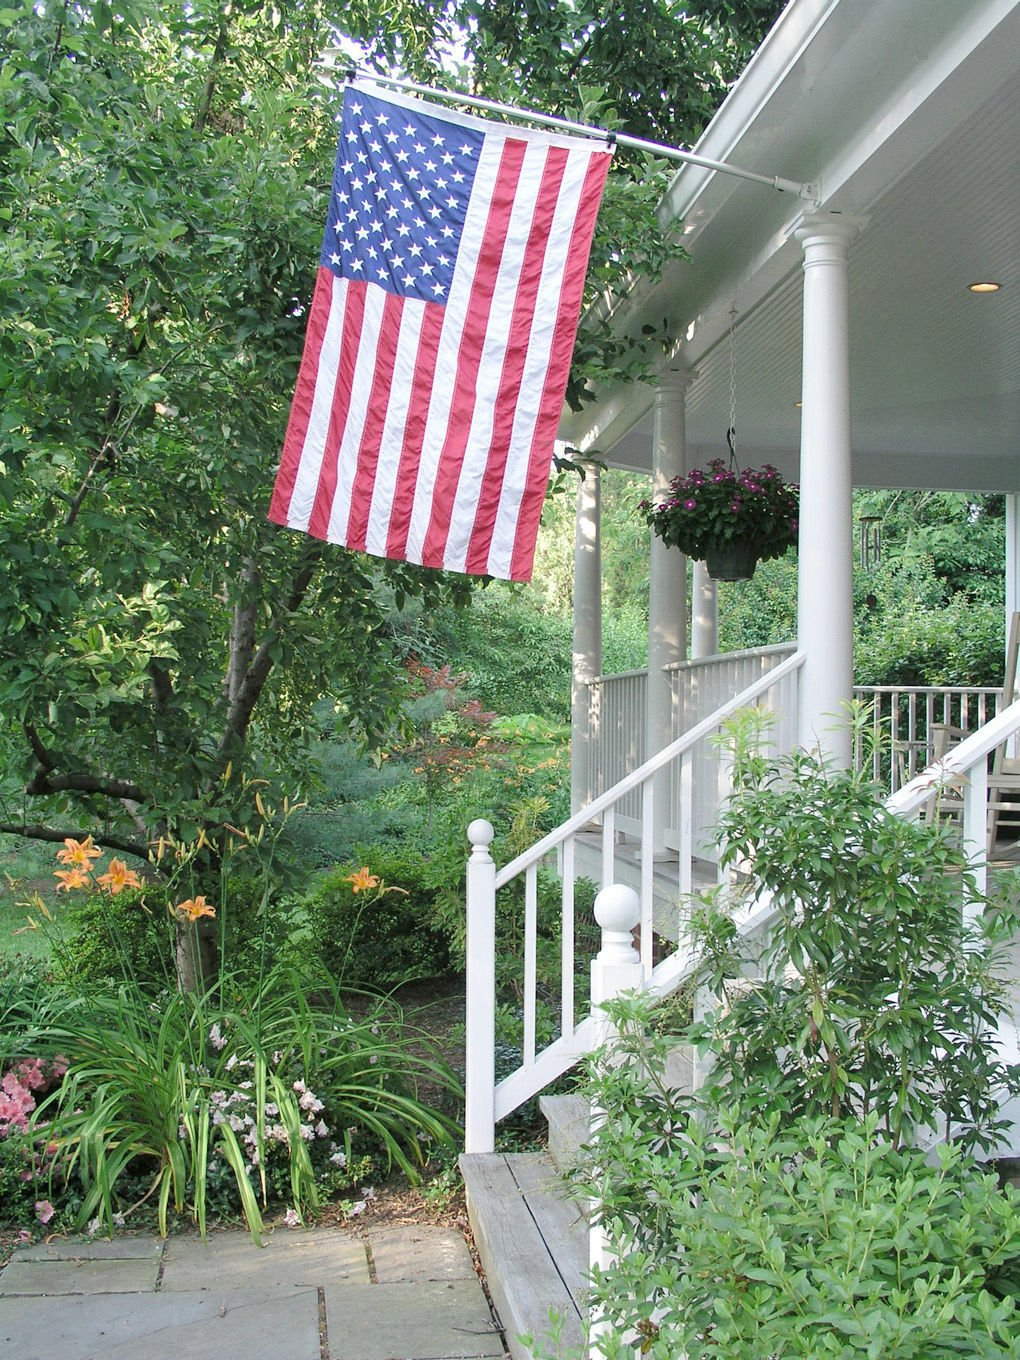 Raising the Stars and Stripes: How to display the American flag at home